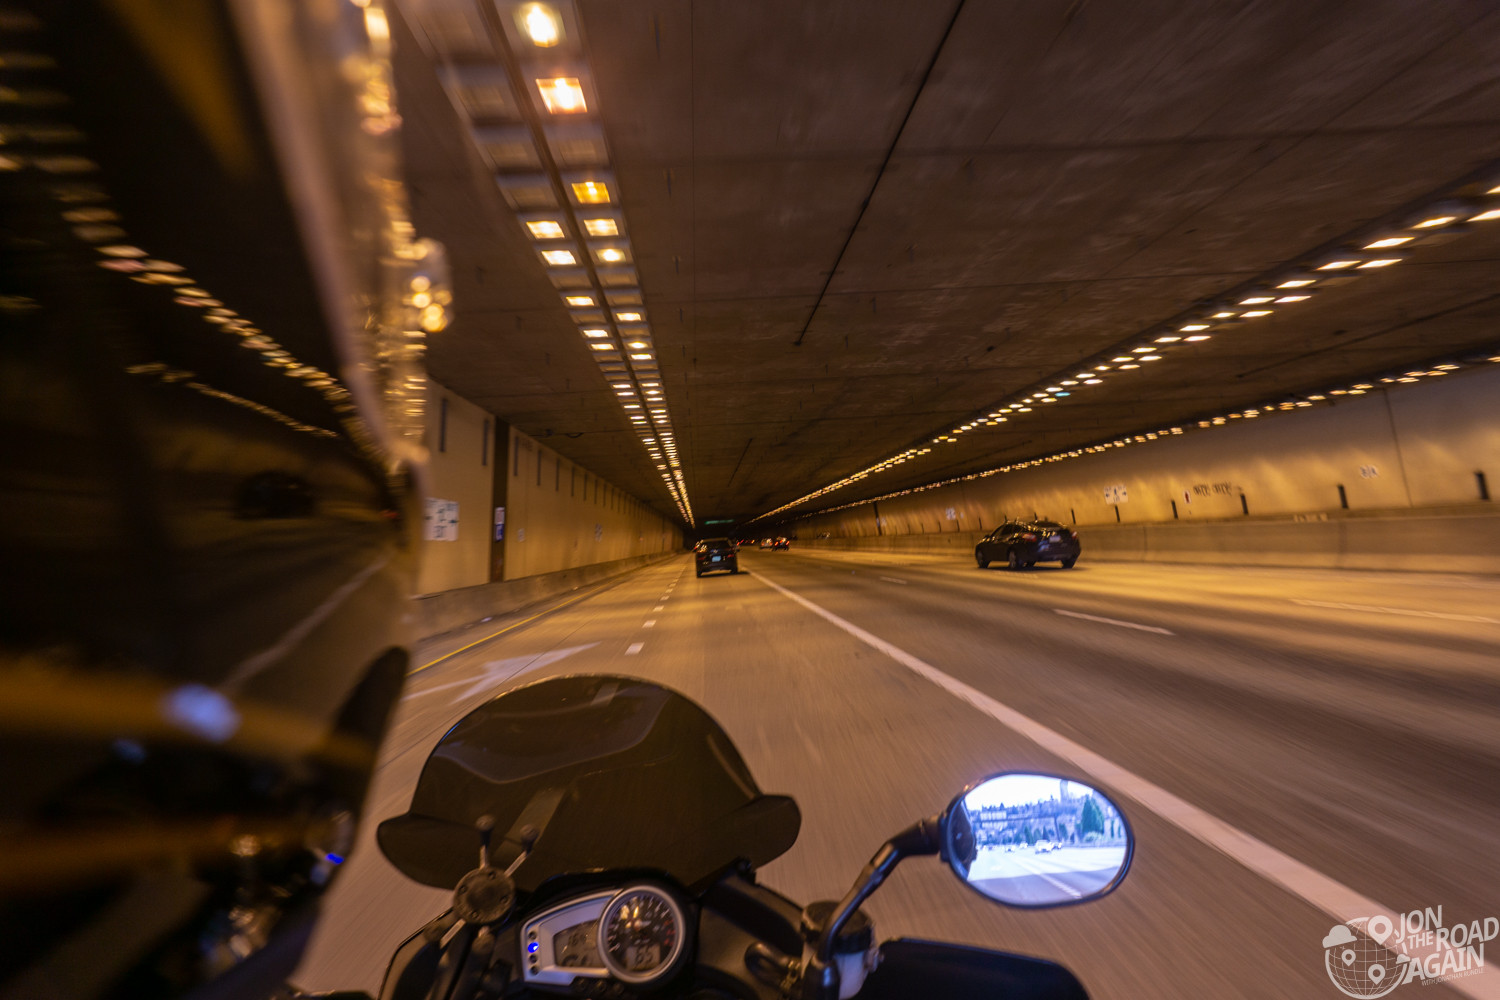 I-90 tunnel on motorcycle